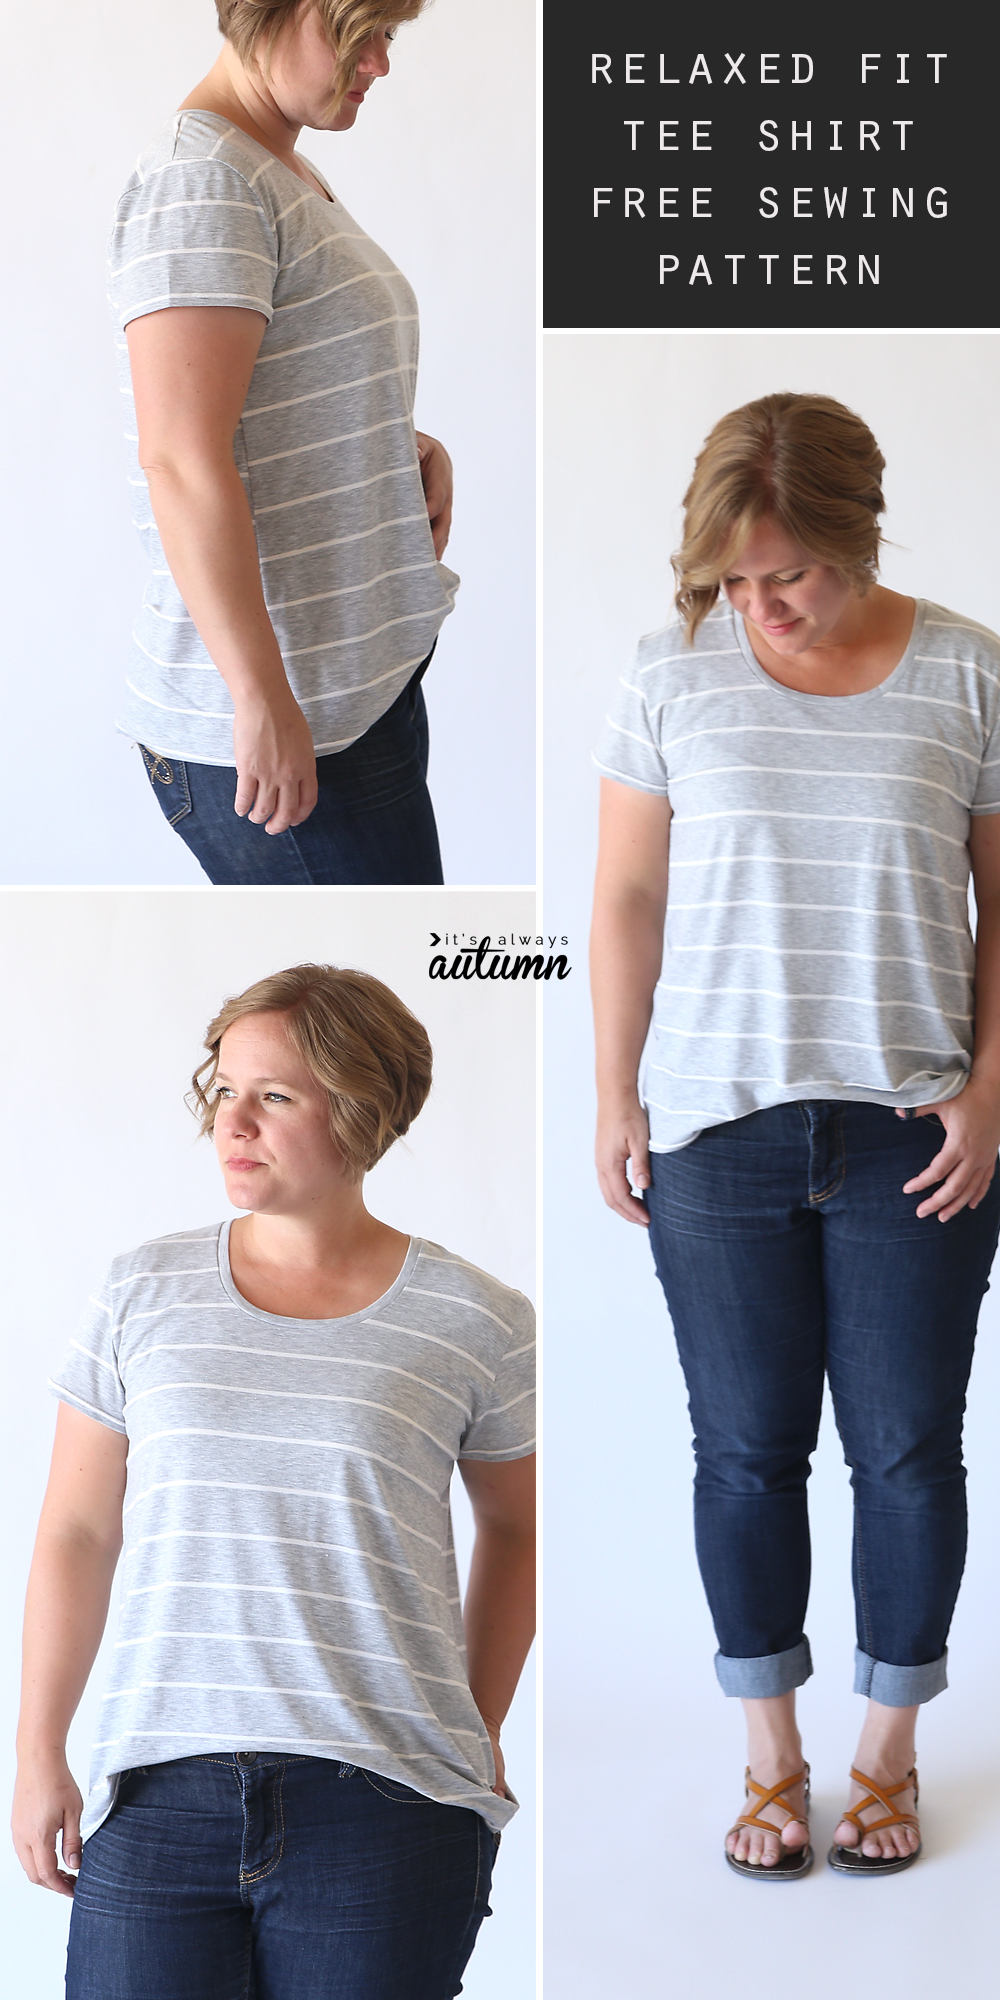 A woman wearing a relaxed fit t-shirt made from a sewing pattern